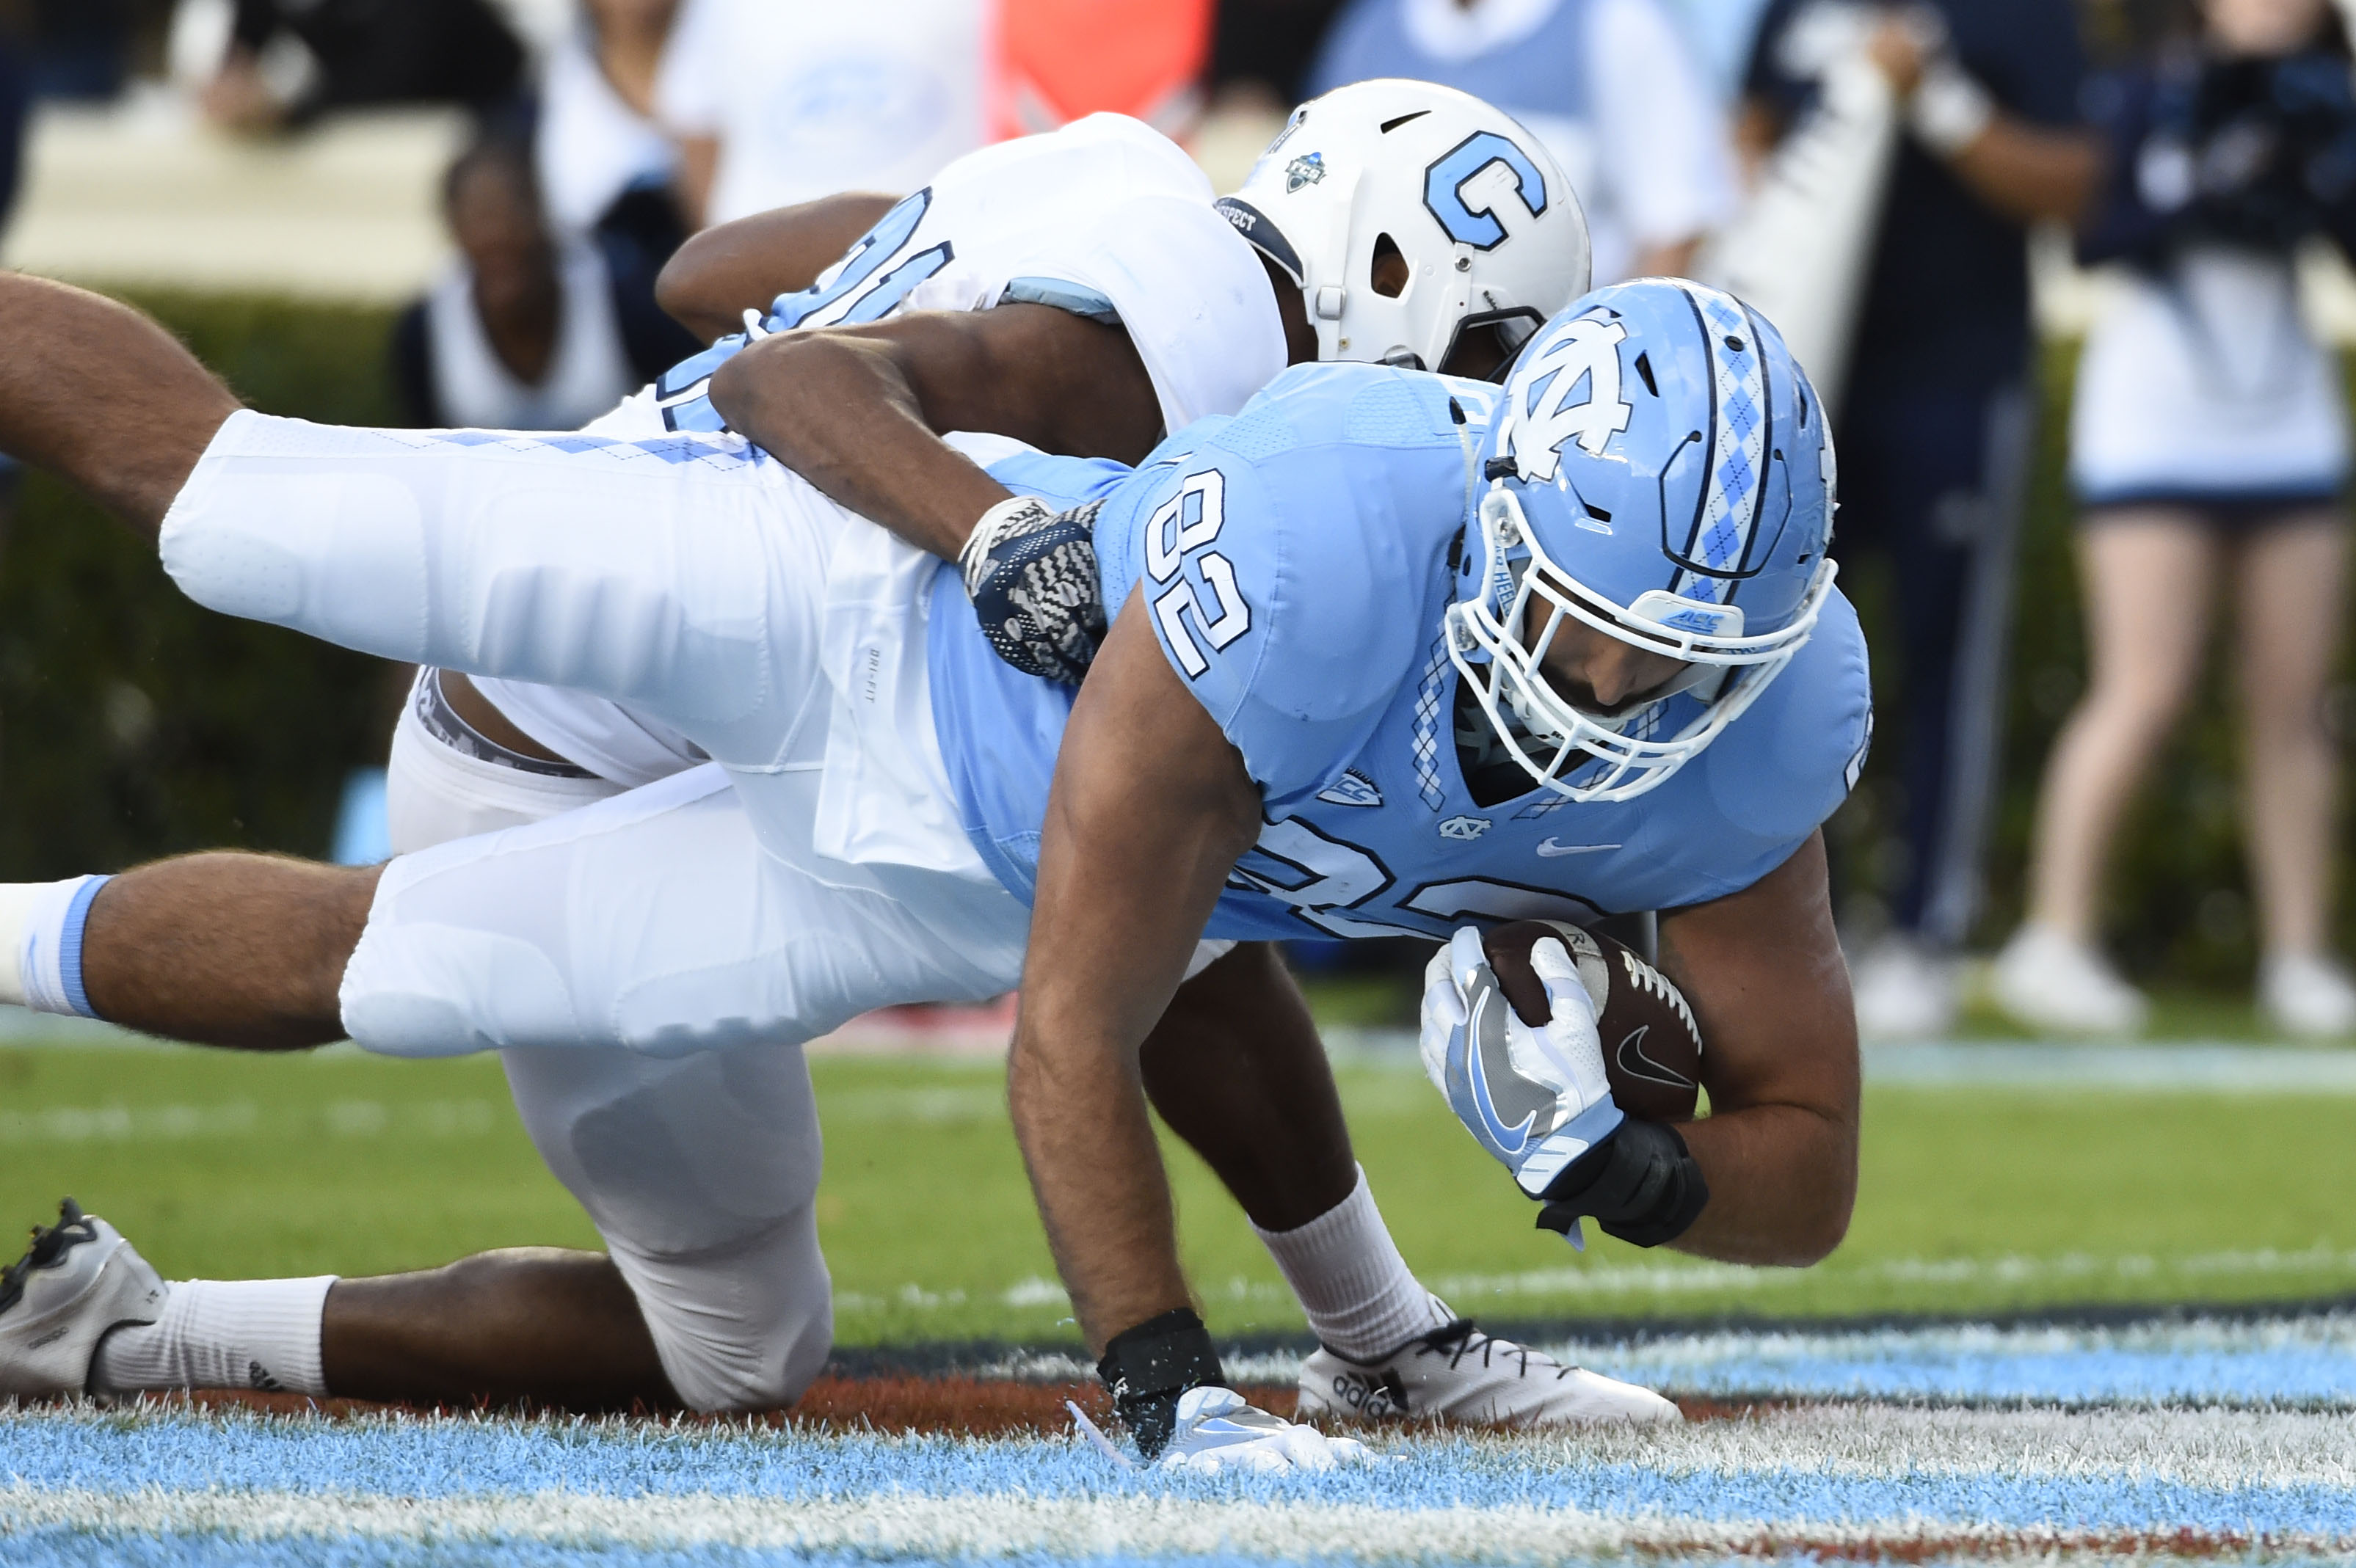 Get the latest North Carolina Tar Heels news scores stats standings rumors and more from ESPN